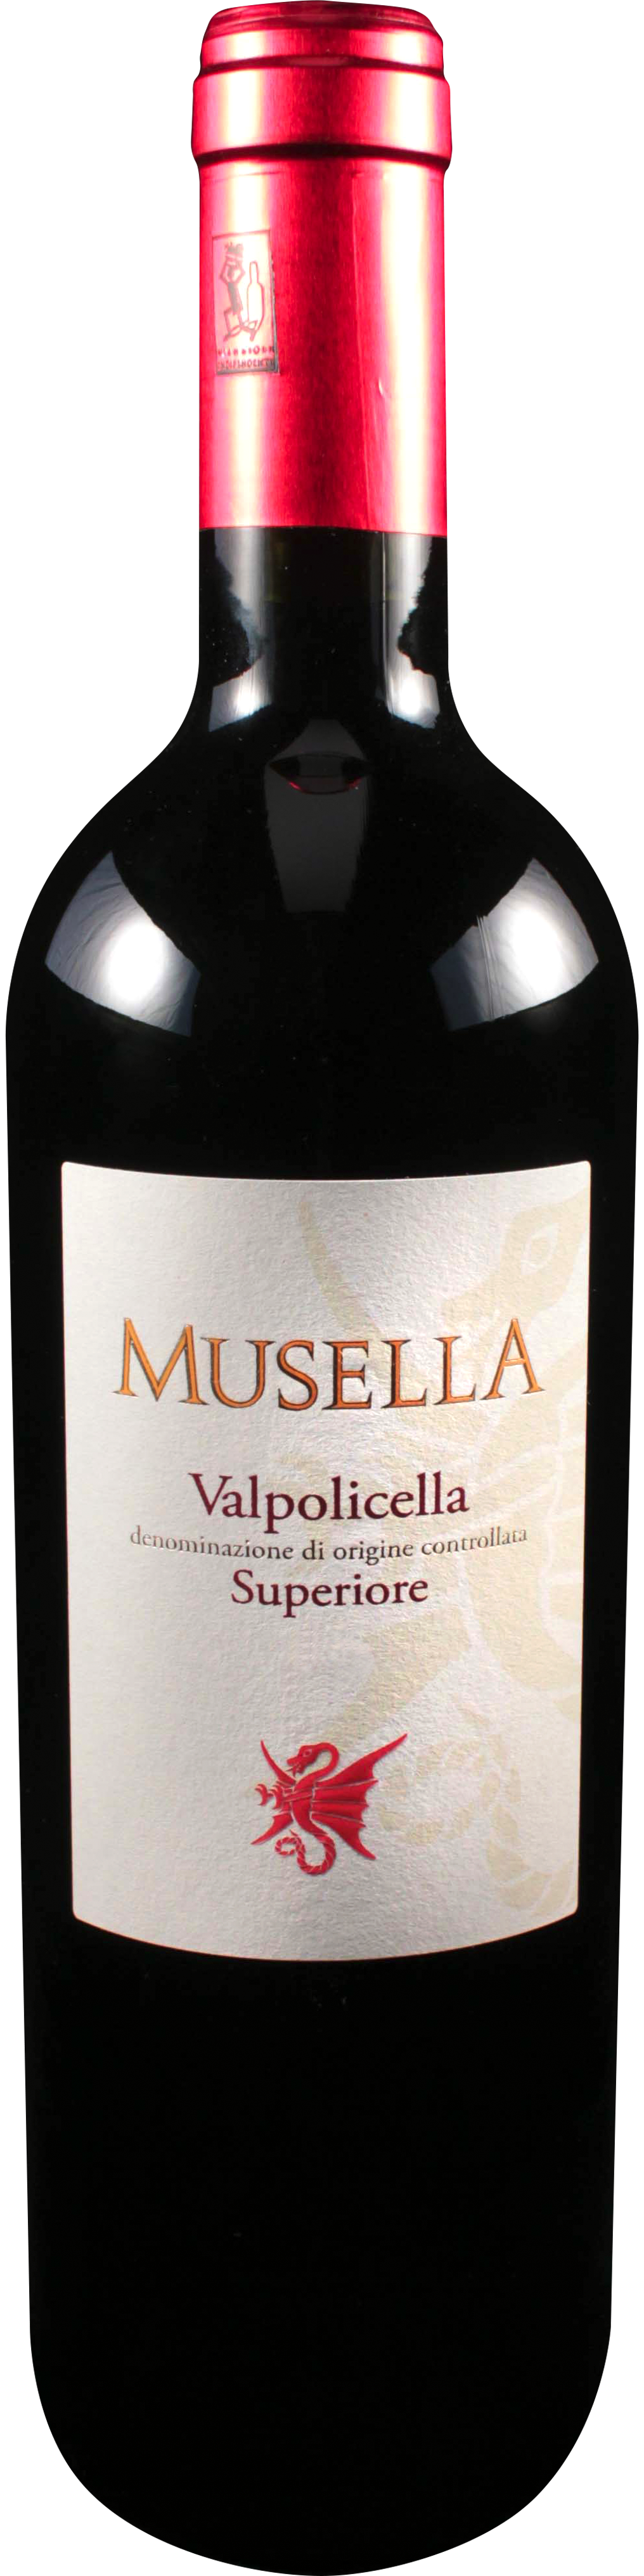 Image of product Valpolicella Superiore